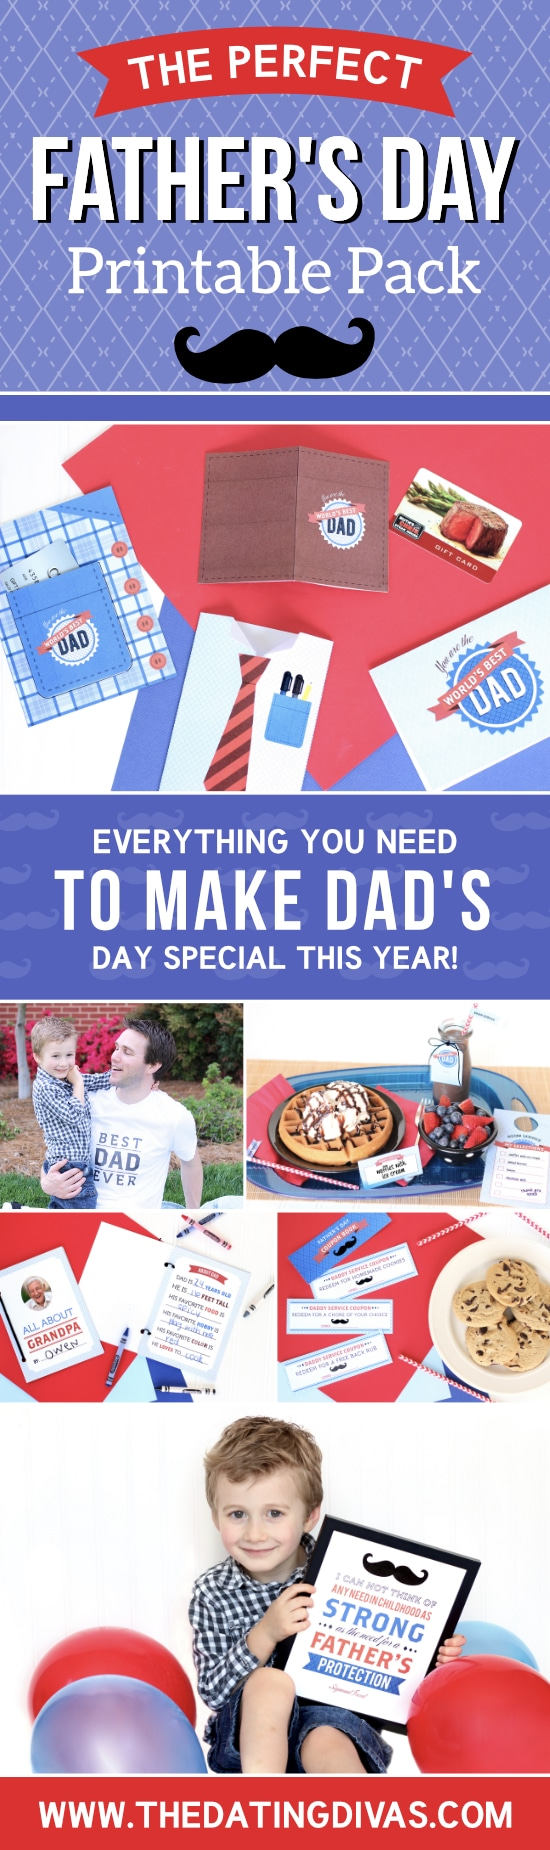 This Happy Father's Day Printable Pack has everything from Father's Day cards, to quotes, to a cute iron-on t-shirt and even a Happy Father's Day coupons printable book! #FathersDay #HappyFathersDayPartyPack